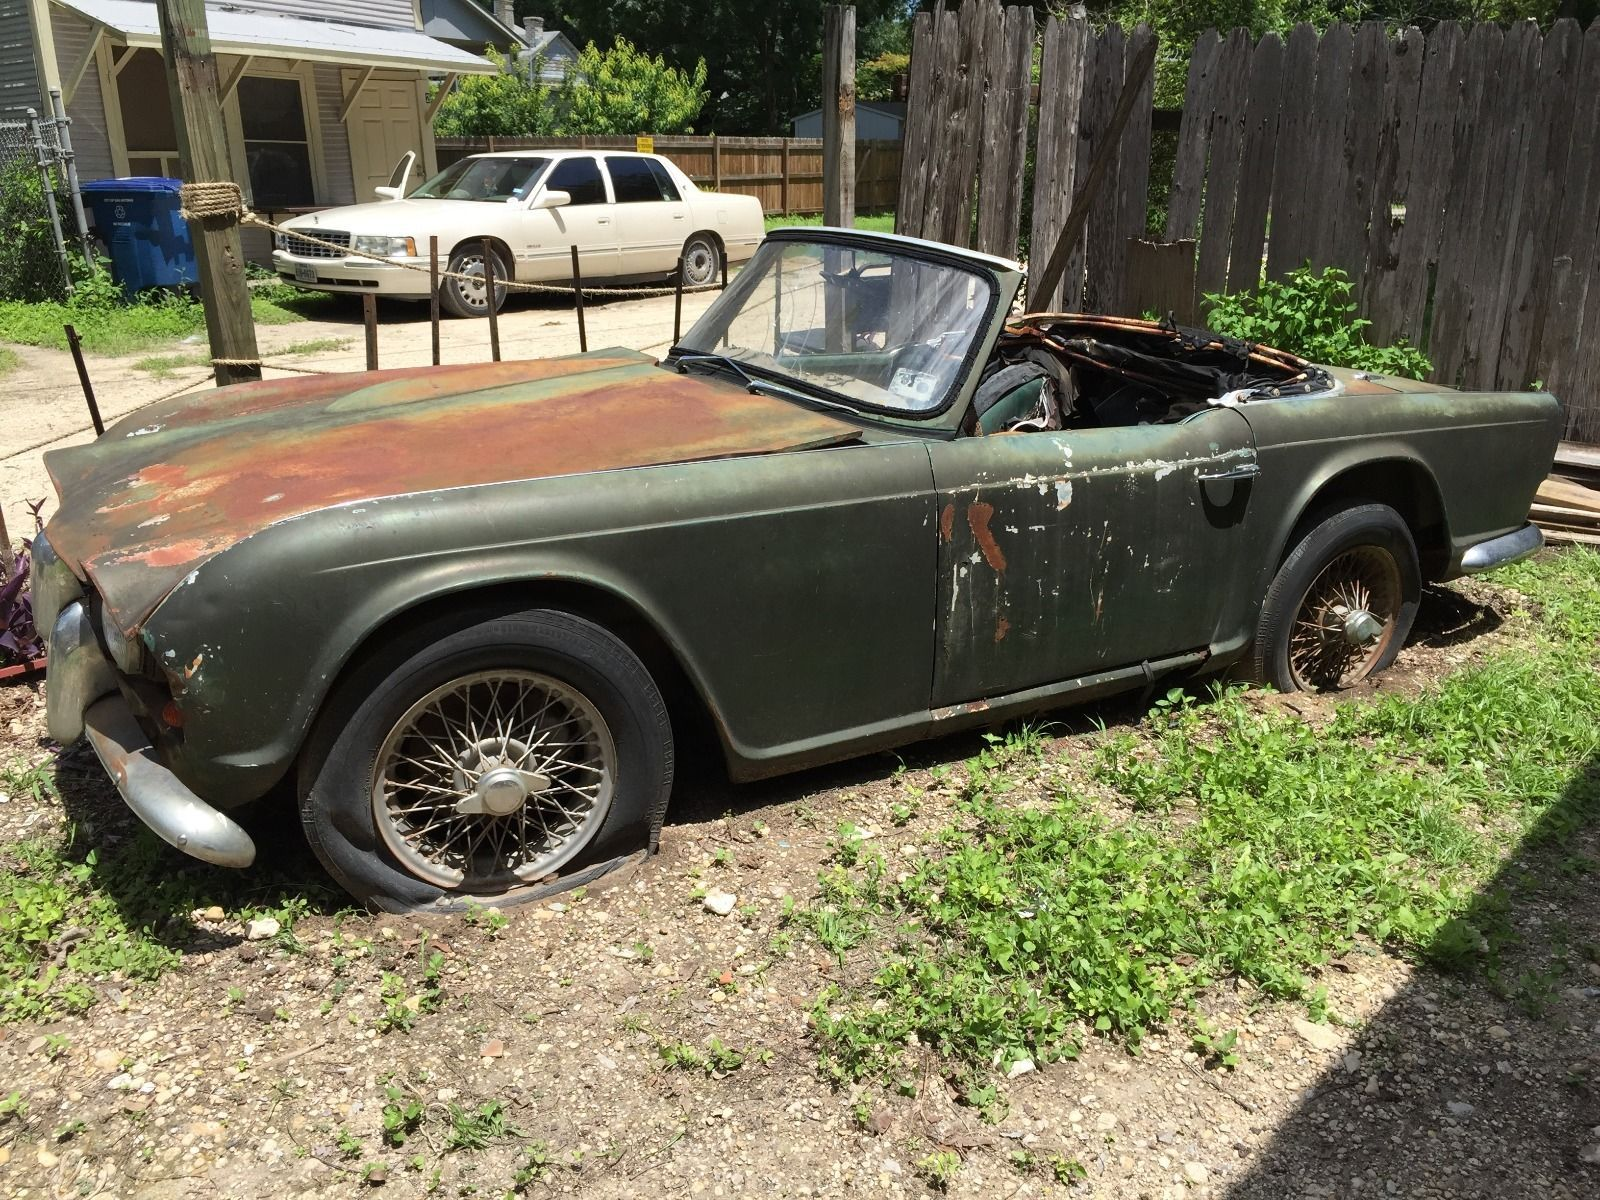 1961 Triumph TR4 Car for Parts Perfect Restoration Source